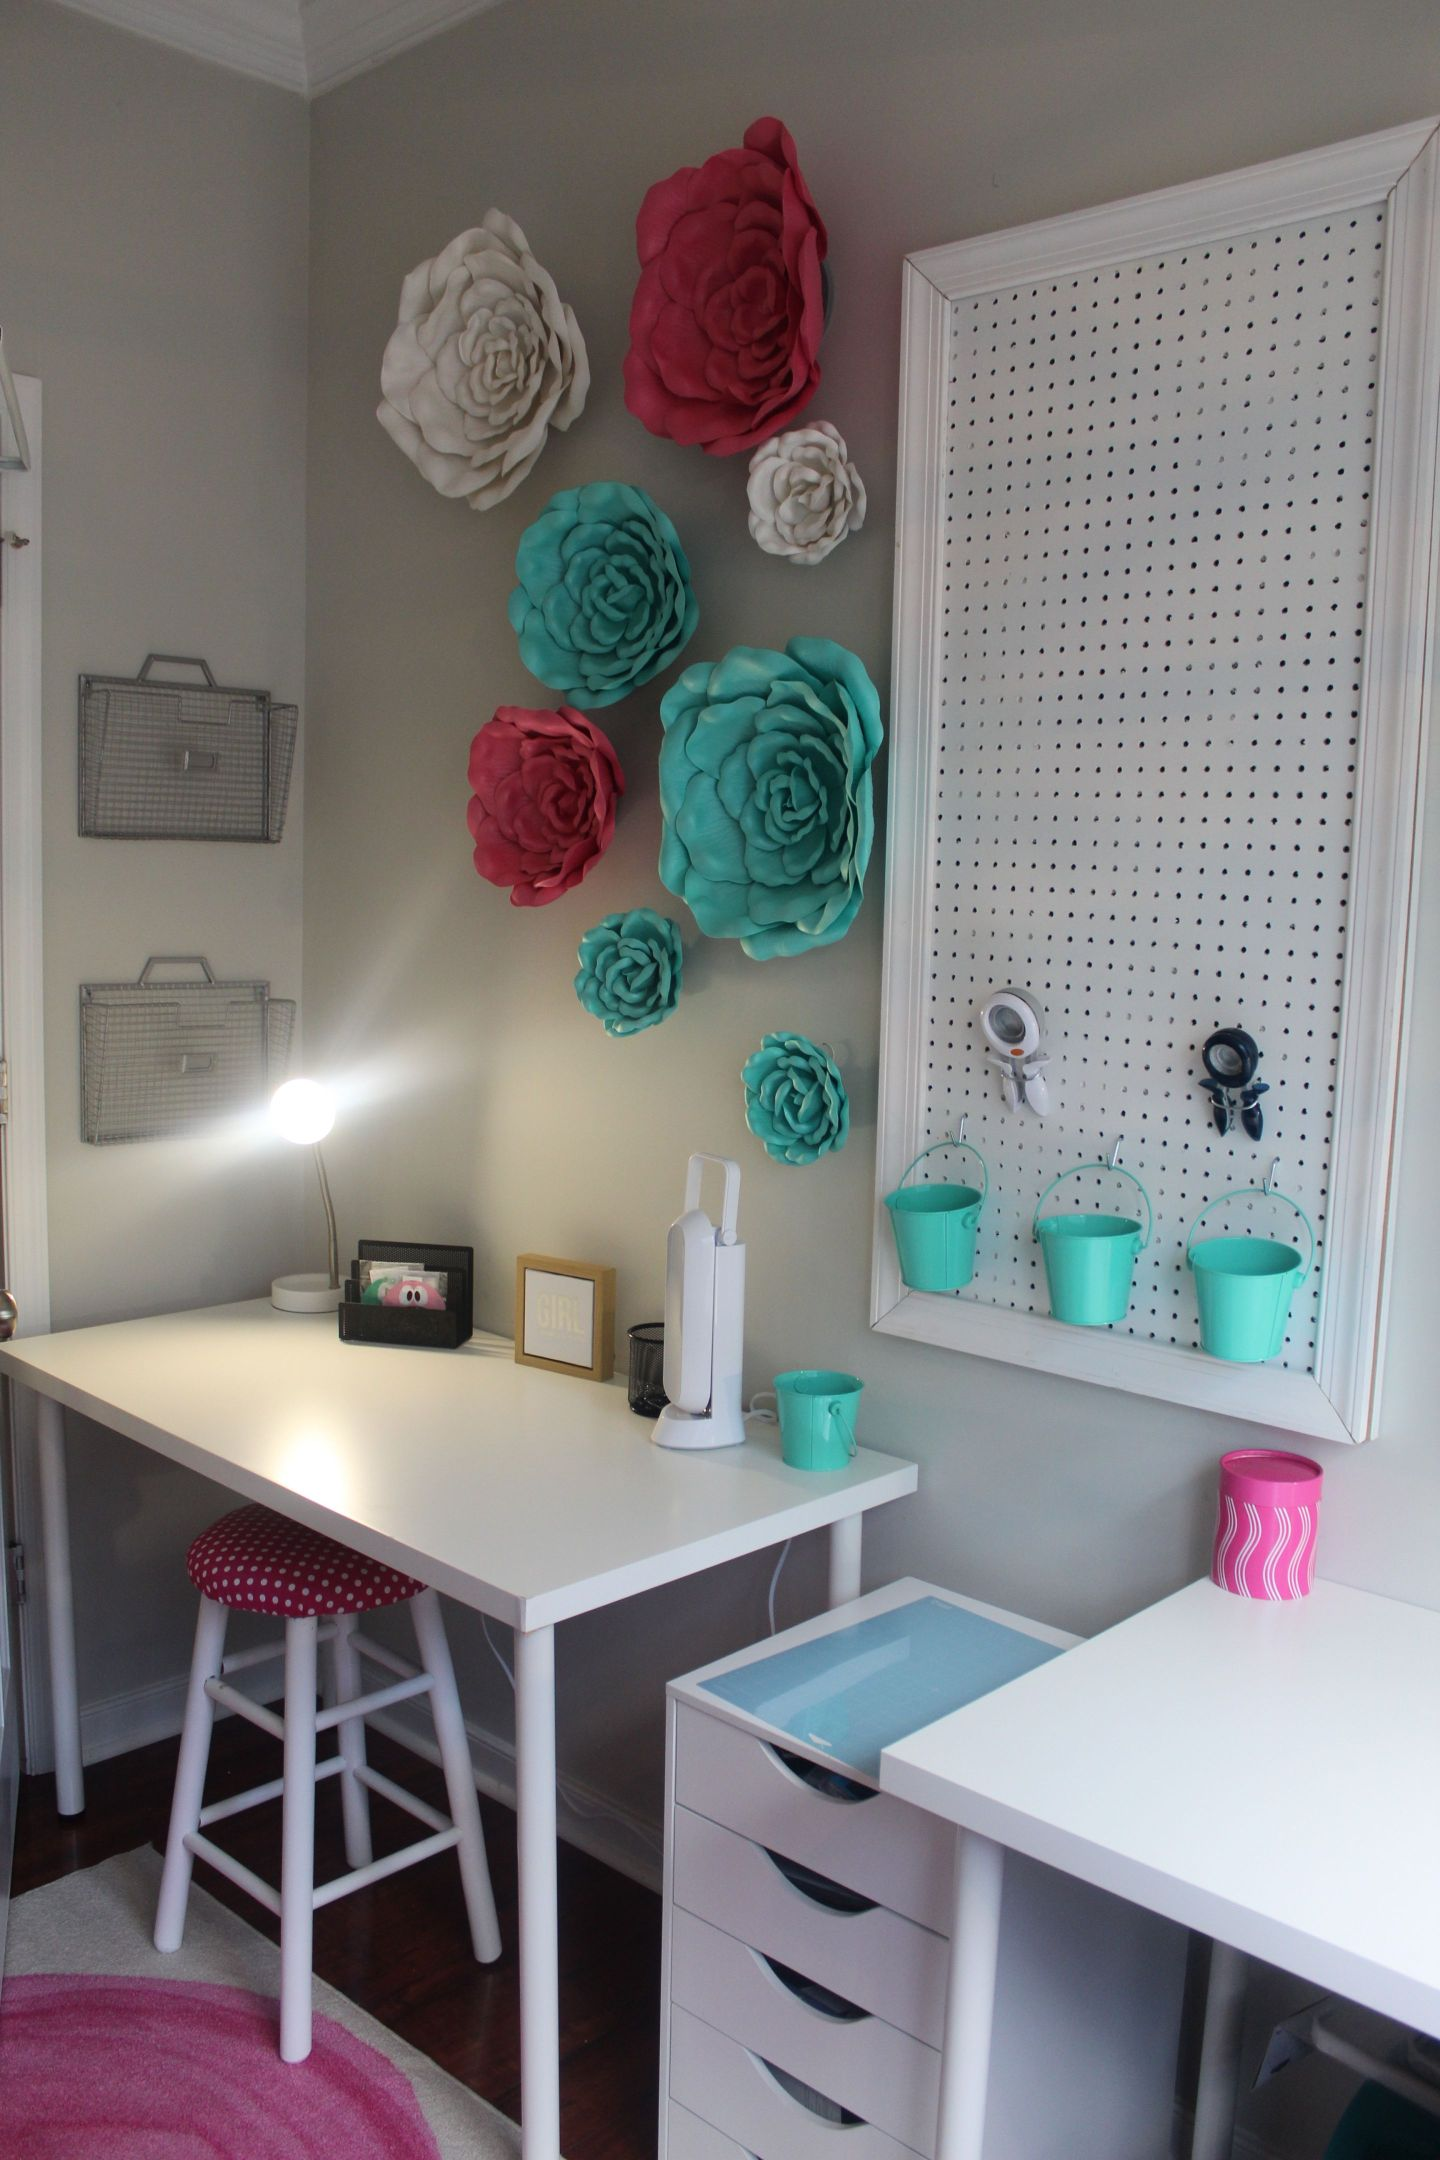 20180929023411_IMG_0264 Tips for Designing a Craft Room from an Interior Designer